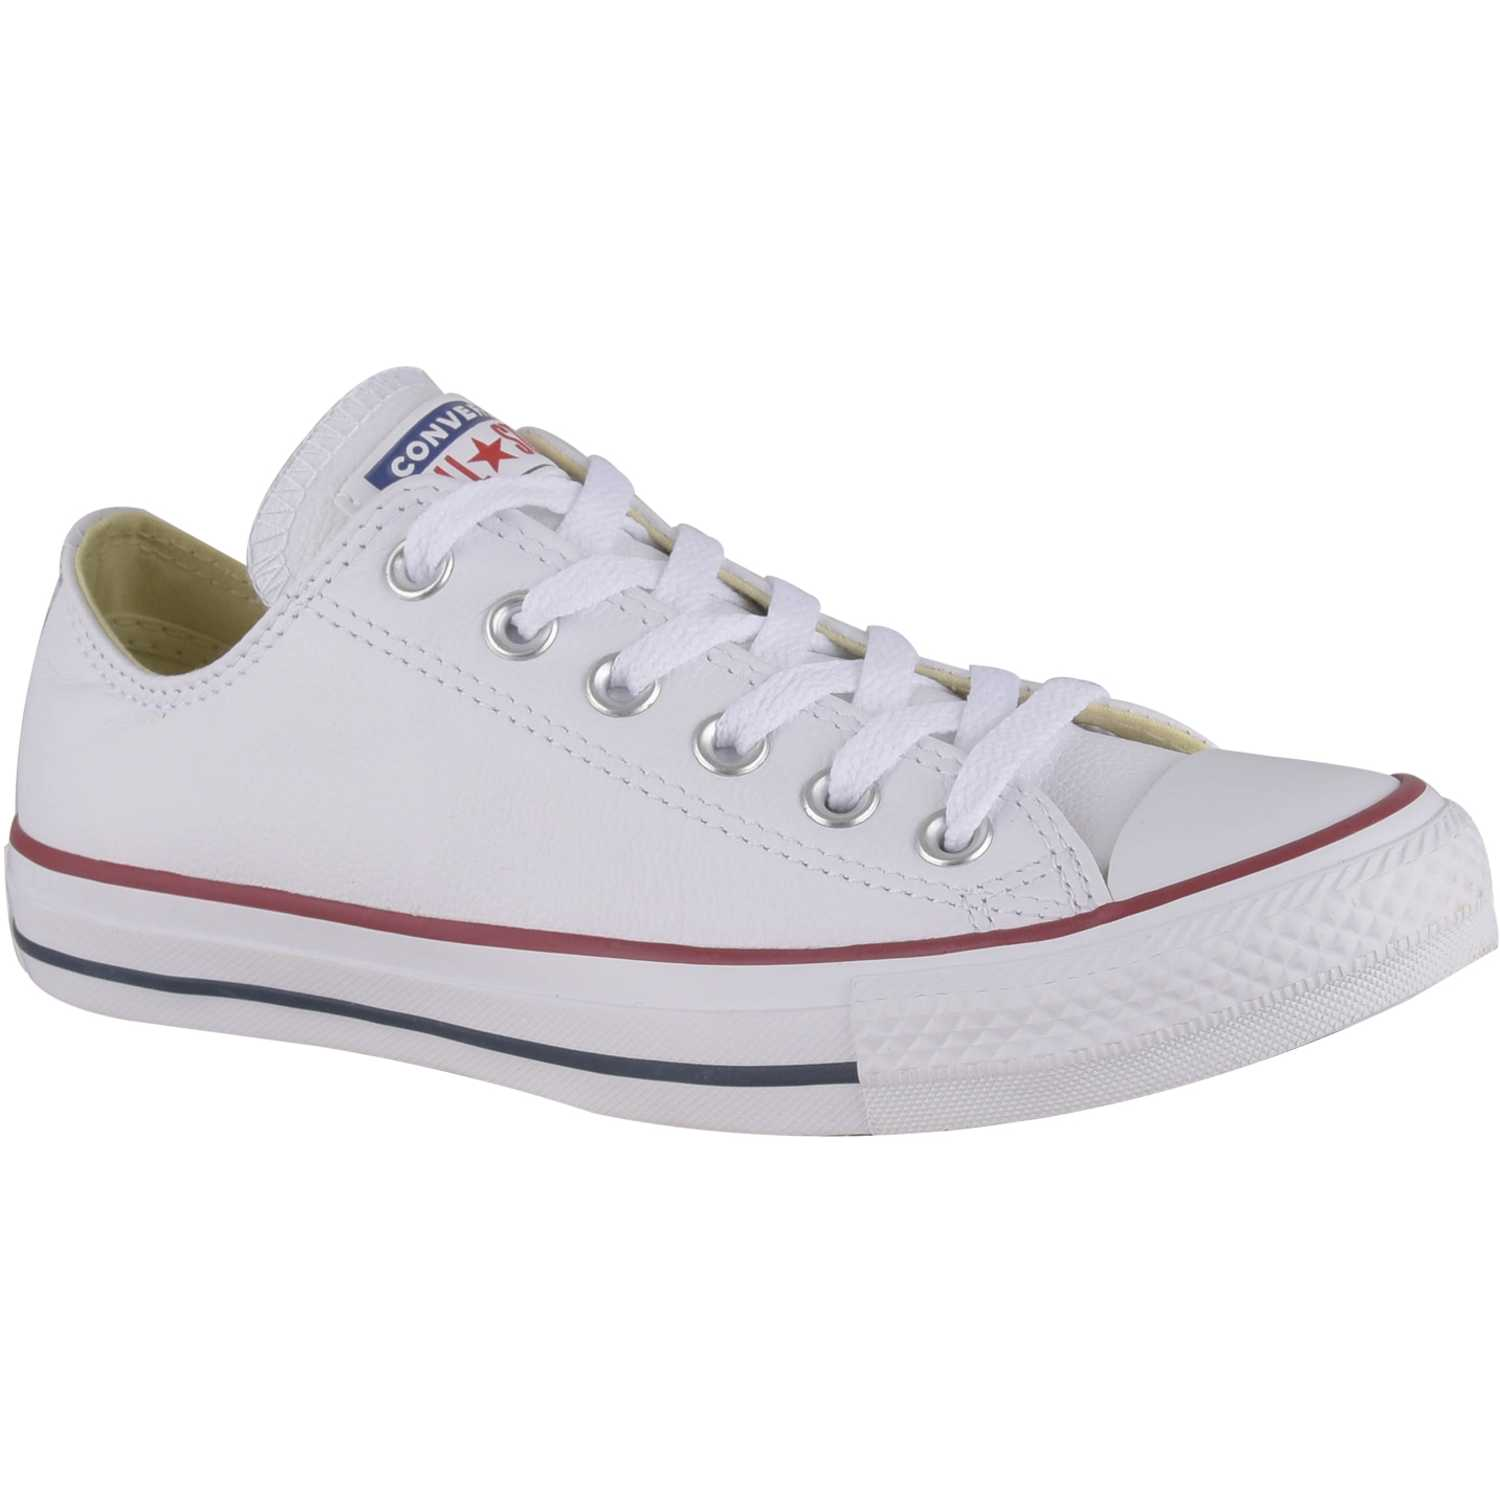 Zapatilla de Jovencita Converse Negro / blanco ctas leather ox